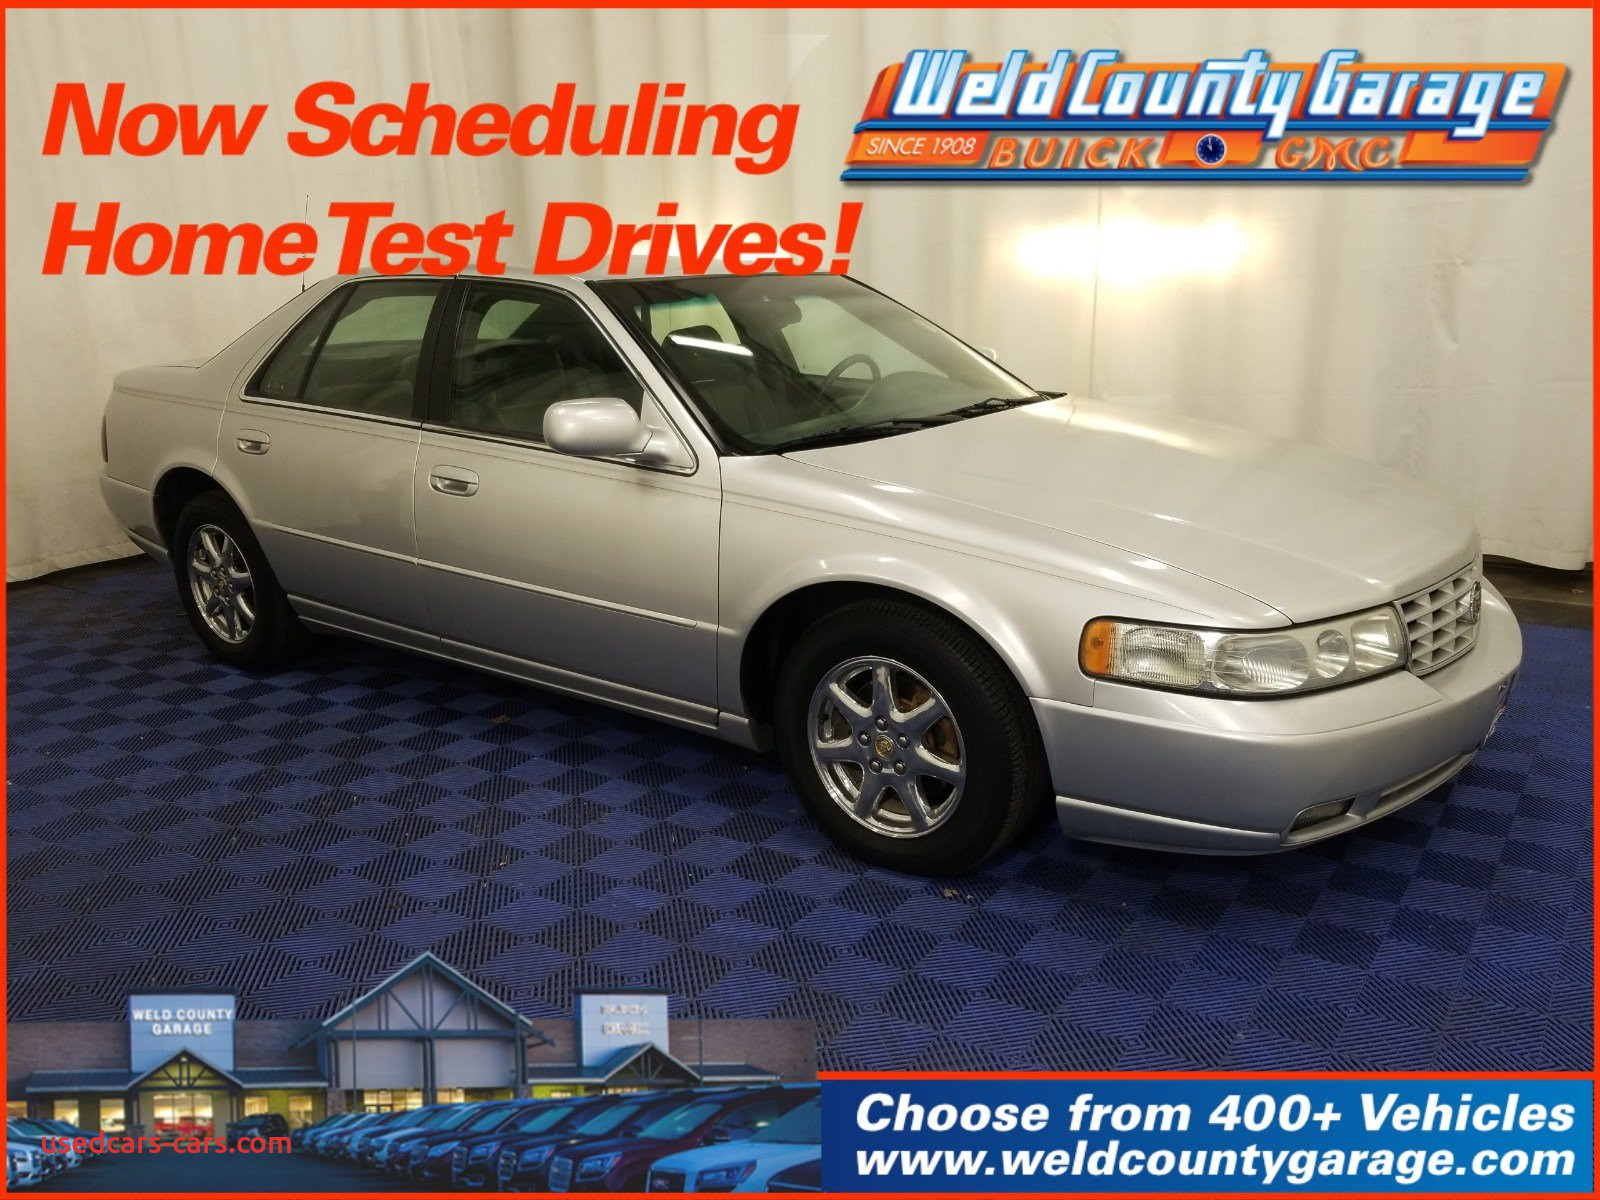 2003 Cadillac Seville Sts Lovely Pre Owned 2003 Cadillac Seville Luxury Sls 4dr Car In